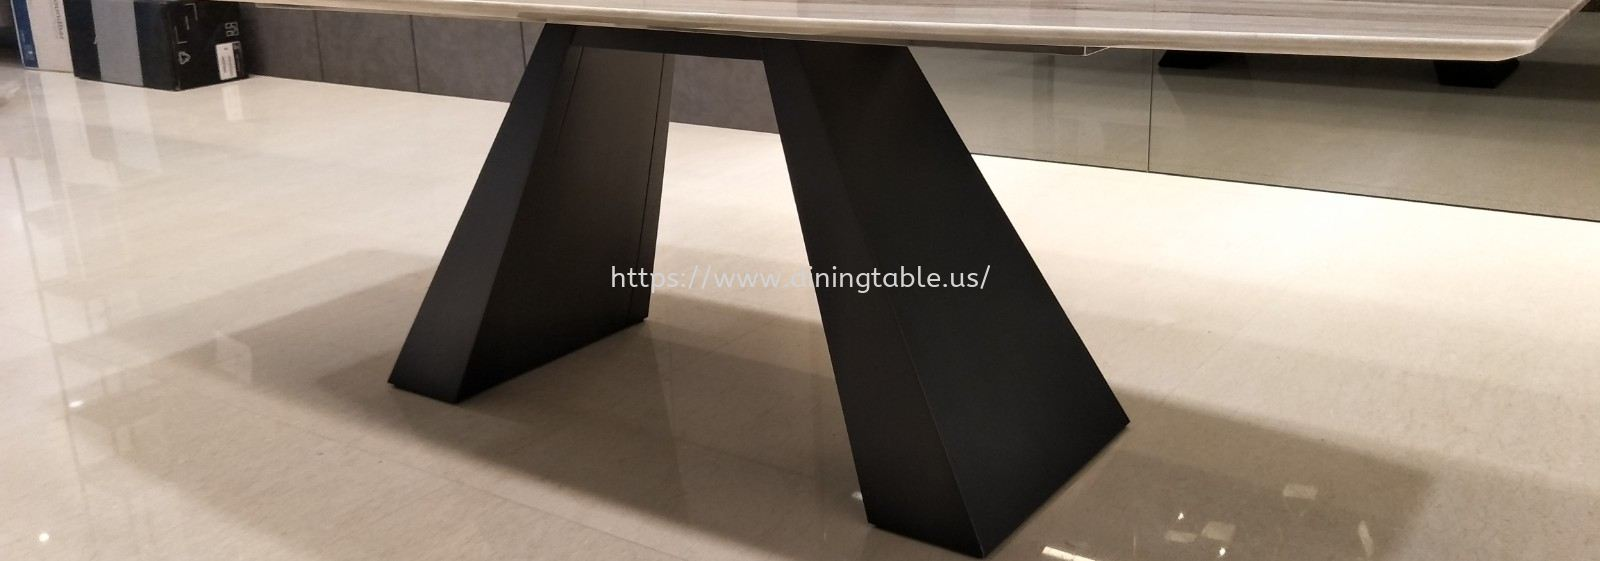 Rectangular Table Base - Quartz Dining Table